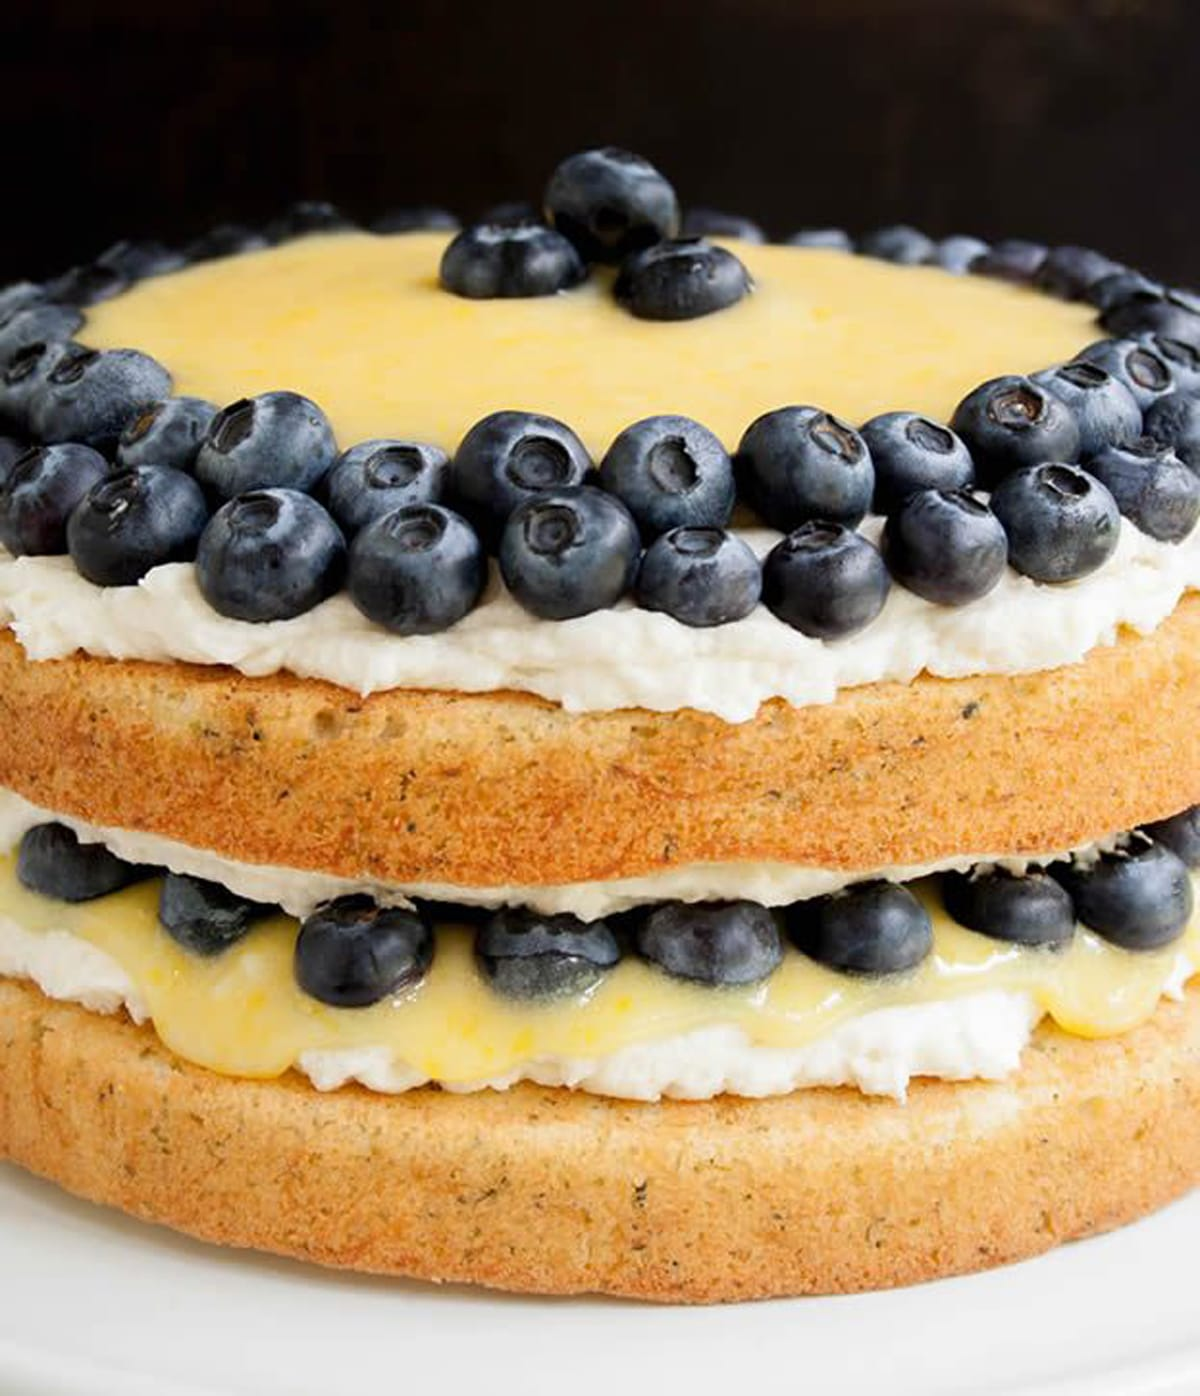 A close up of a two-layer cake with blueberries on the cake